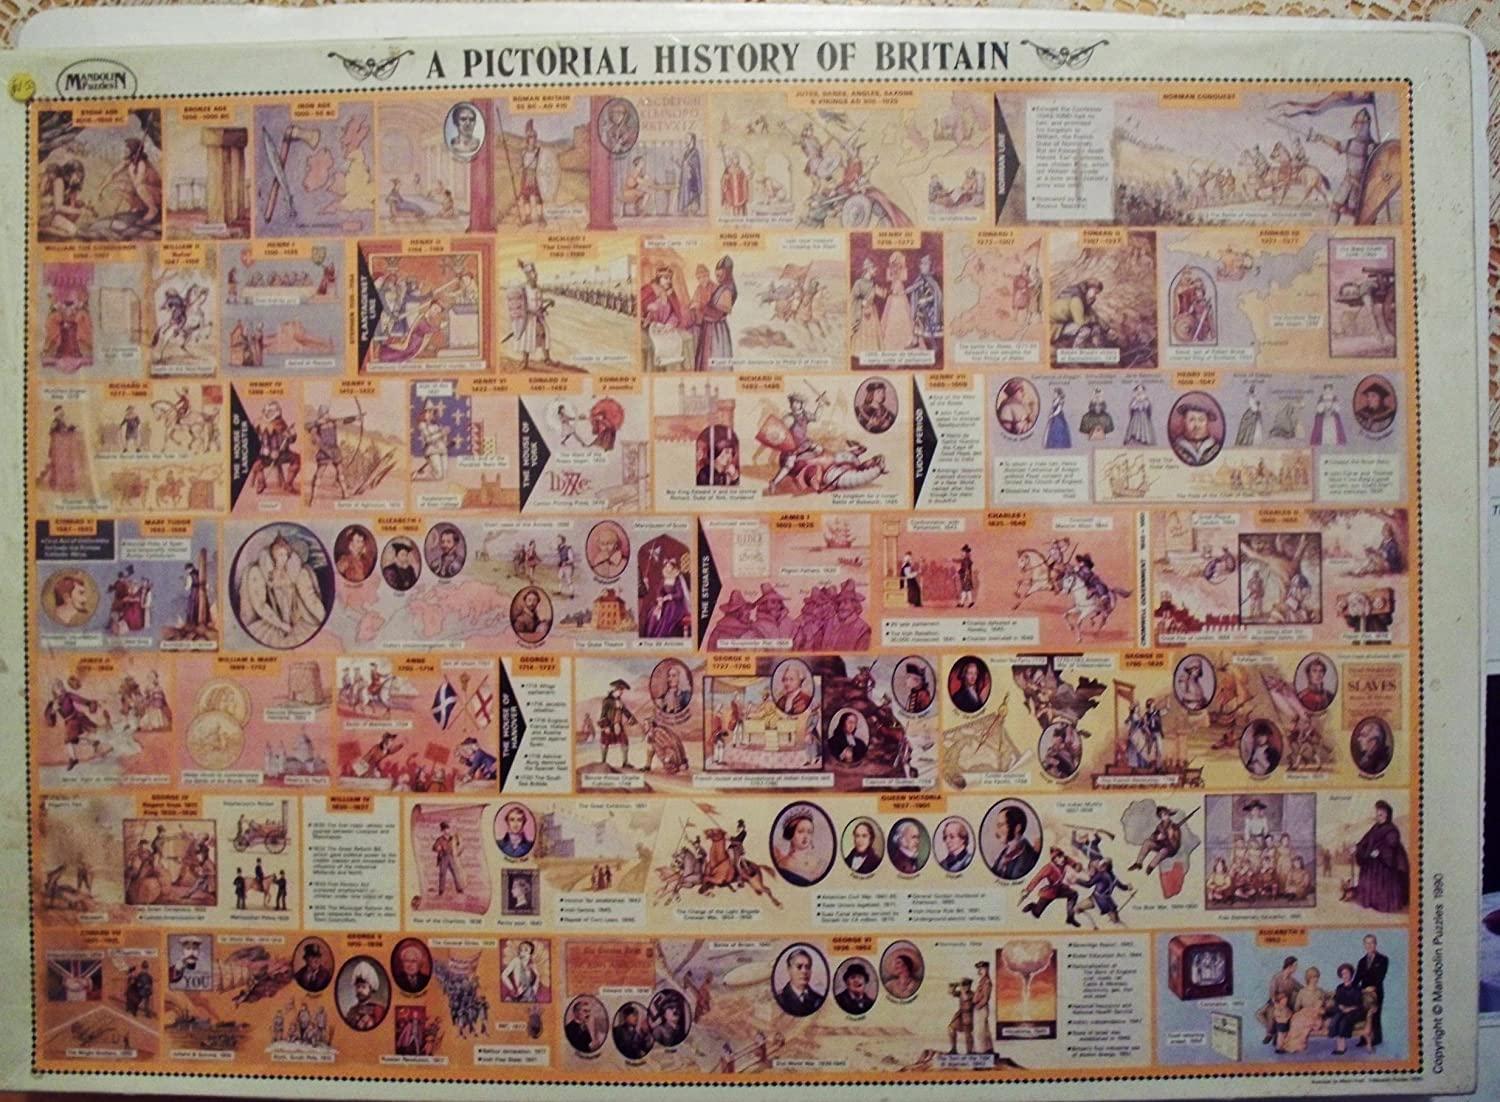 A Pictorial History of Britain 91xw2Br2tVqLSL1500_